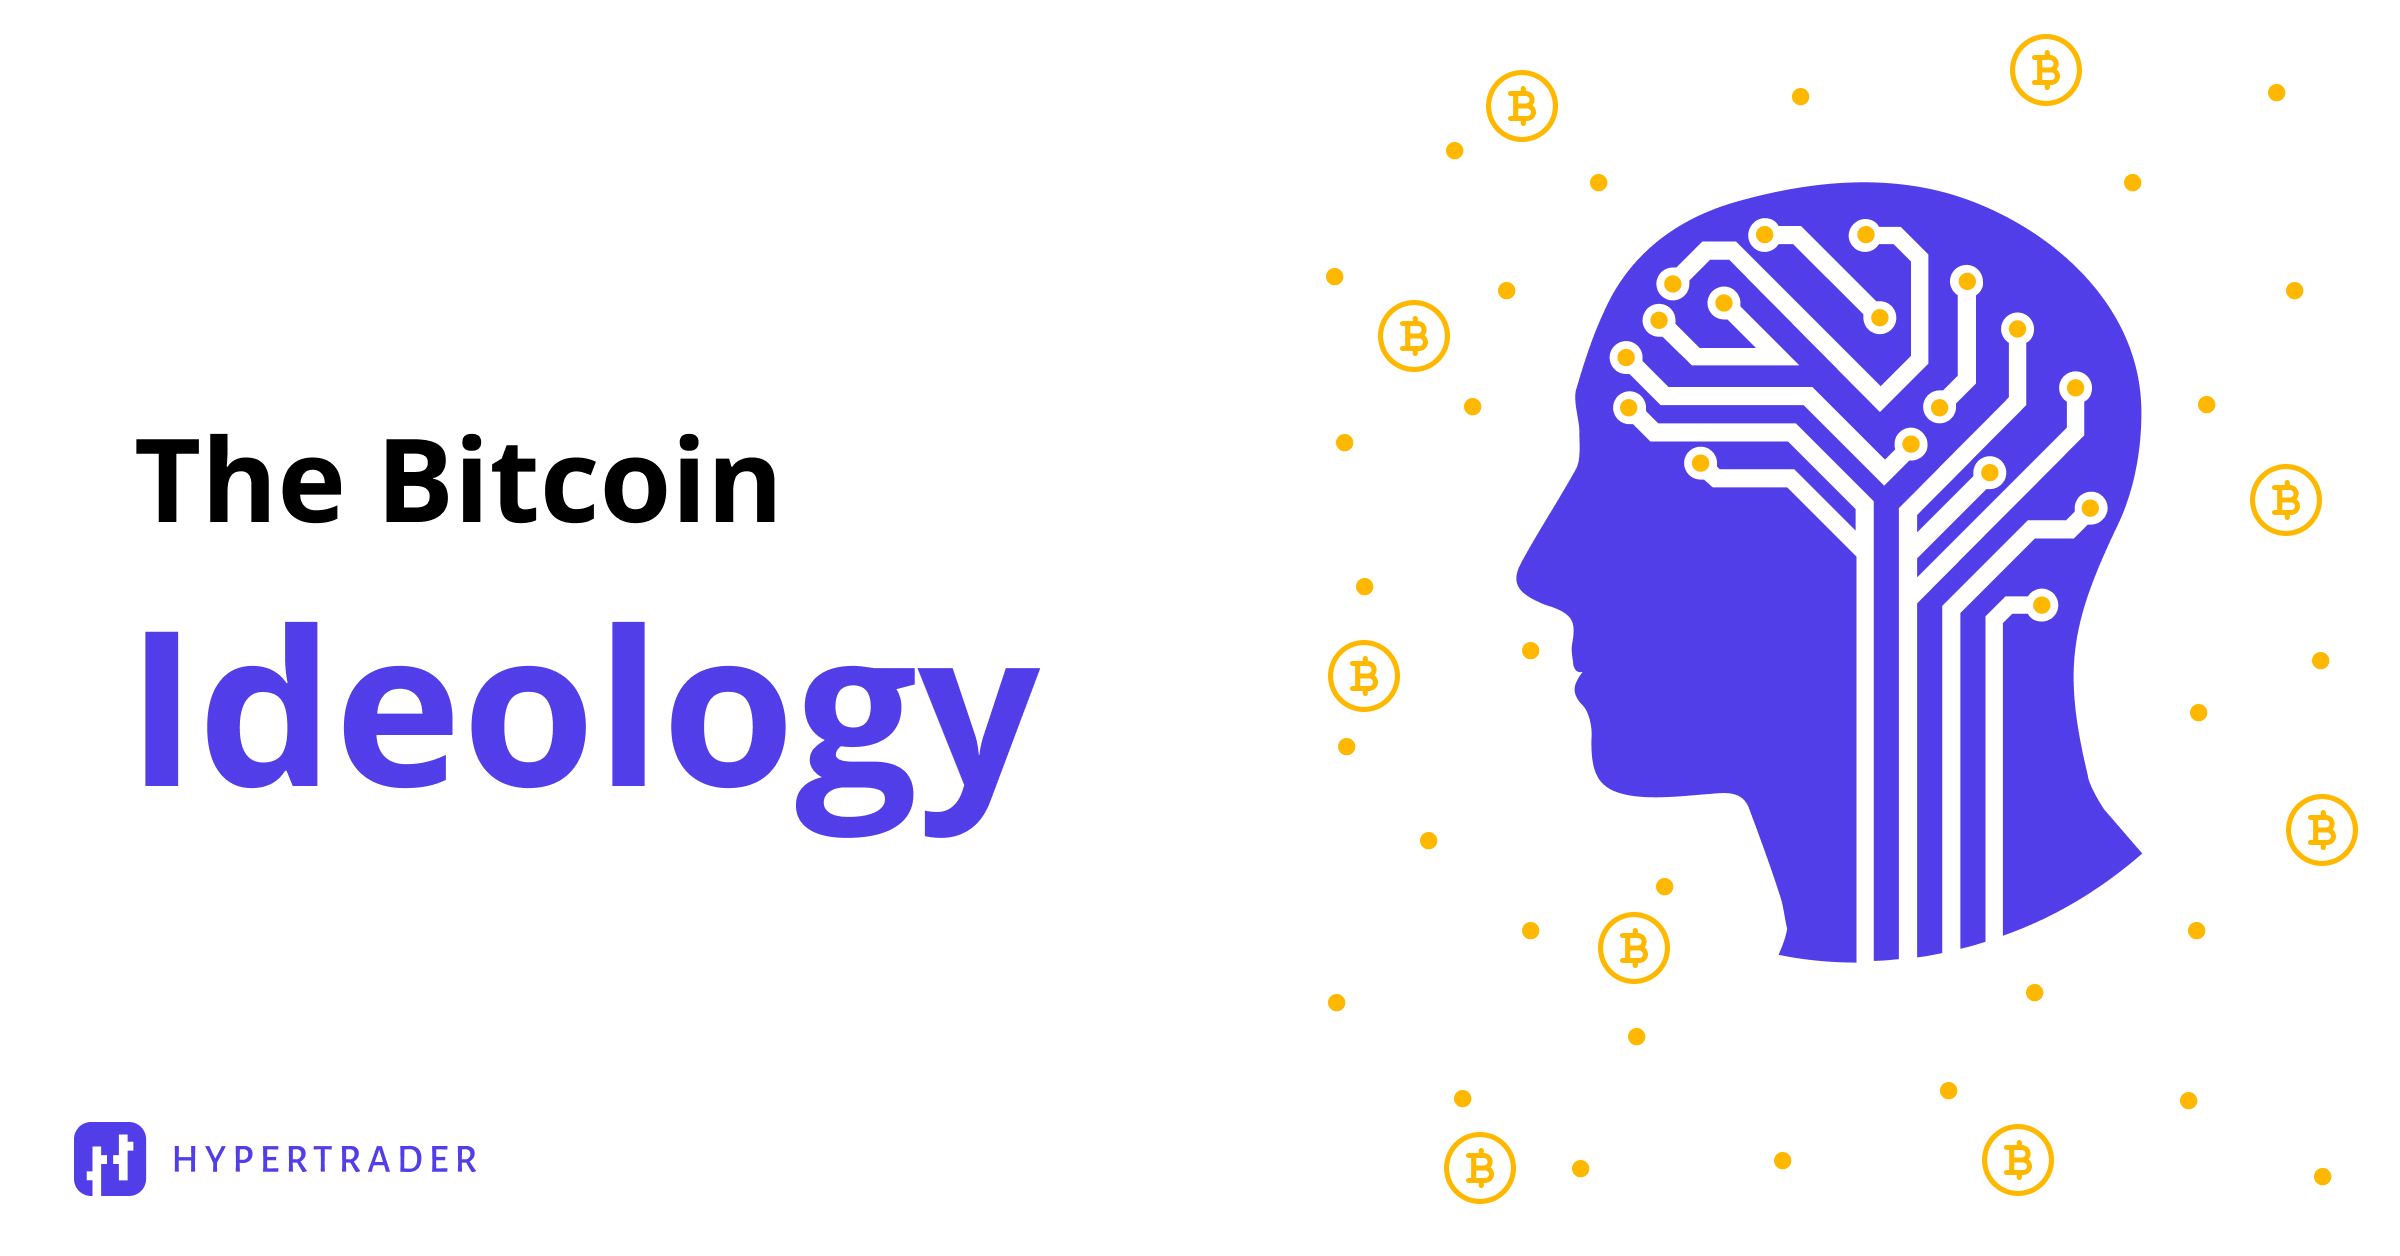 The Bitcoin Ideology